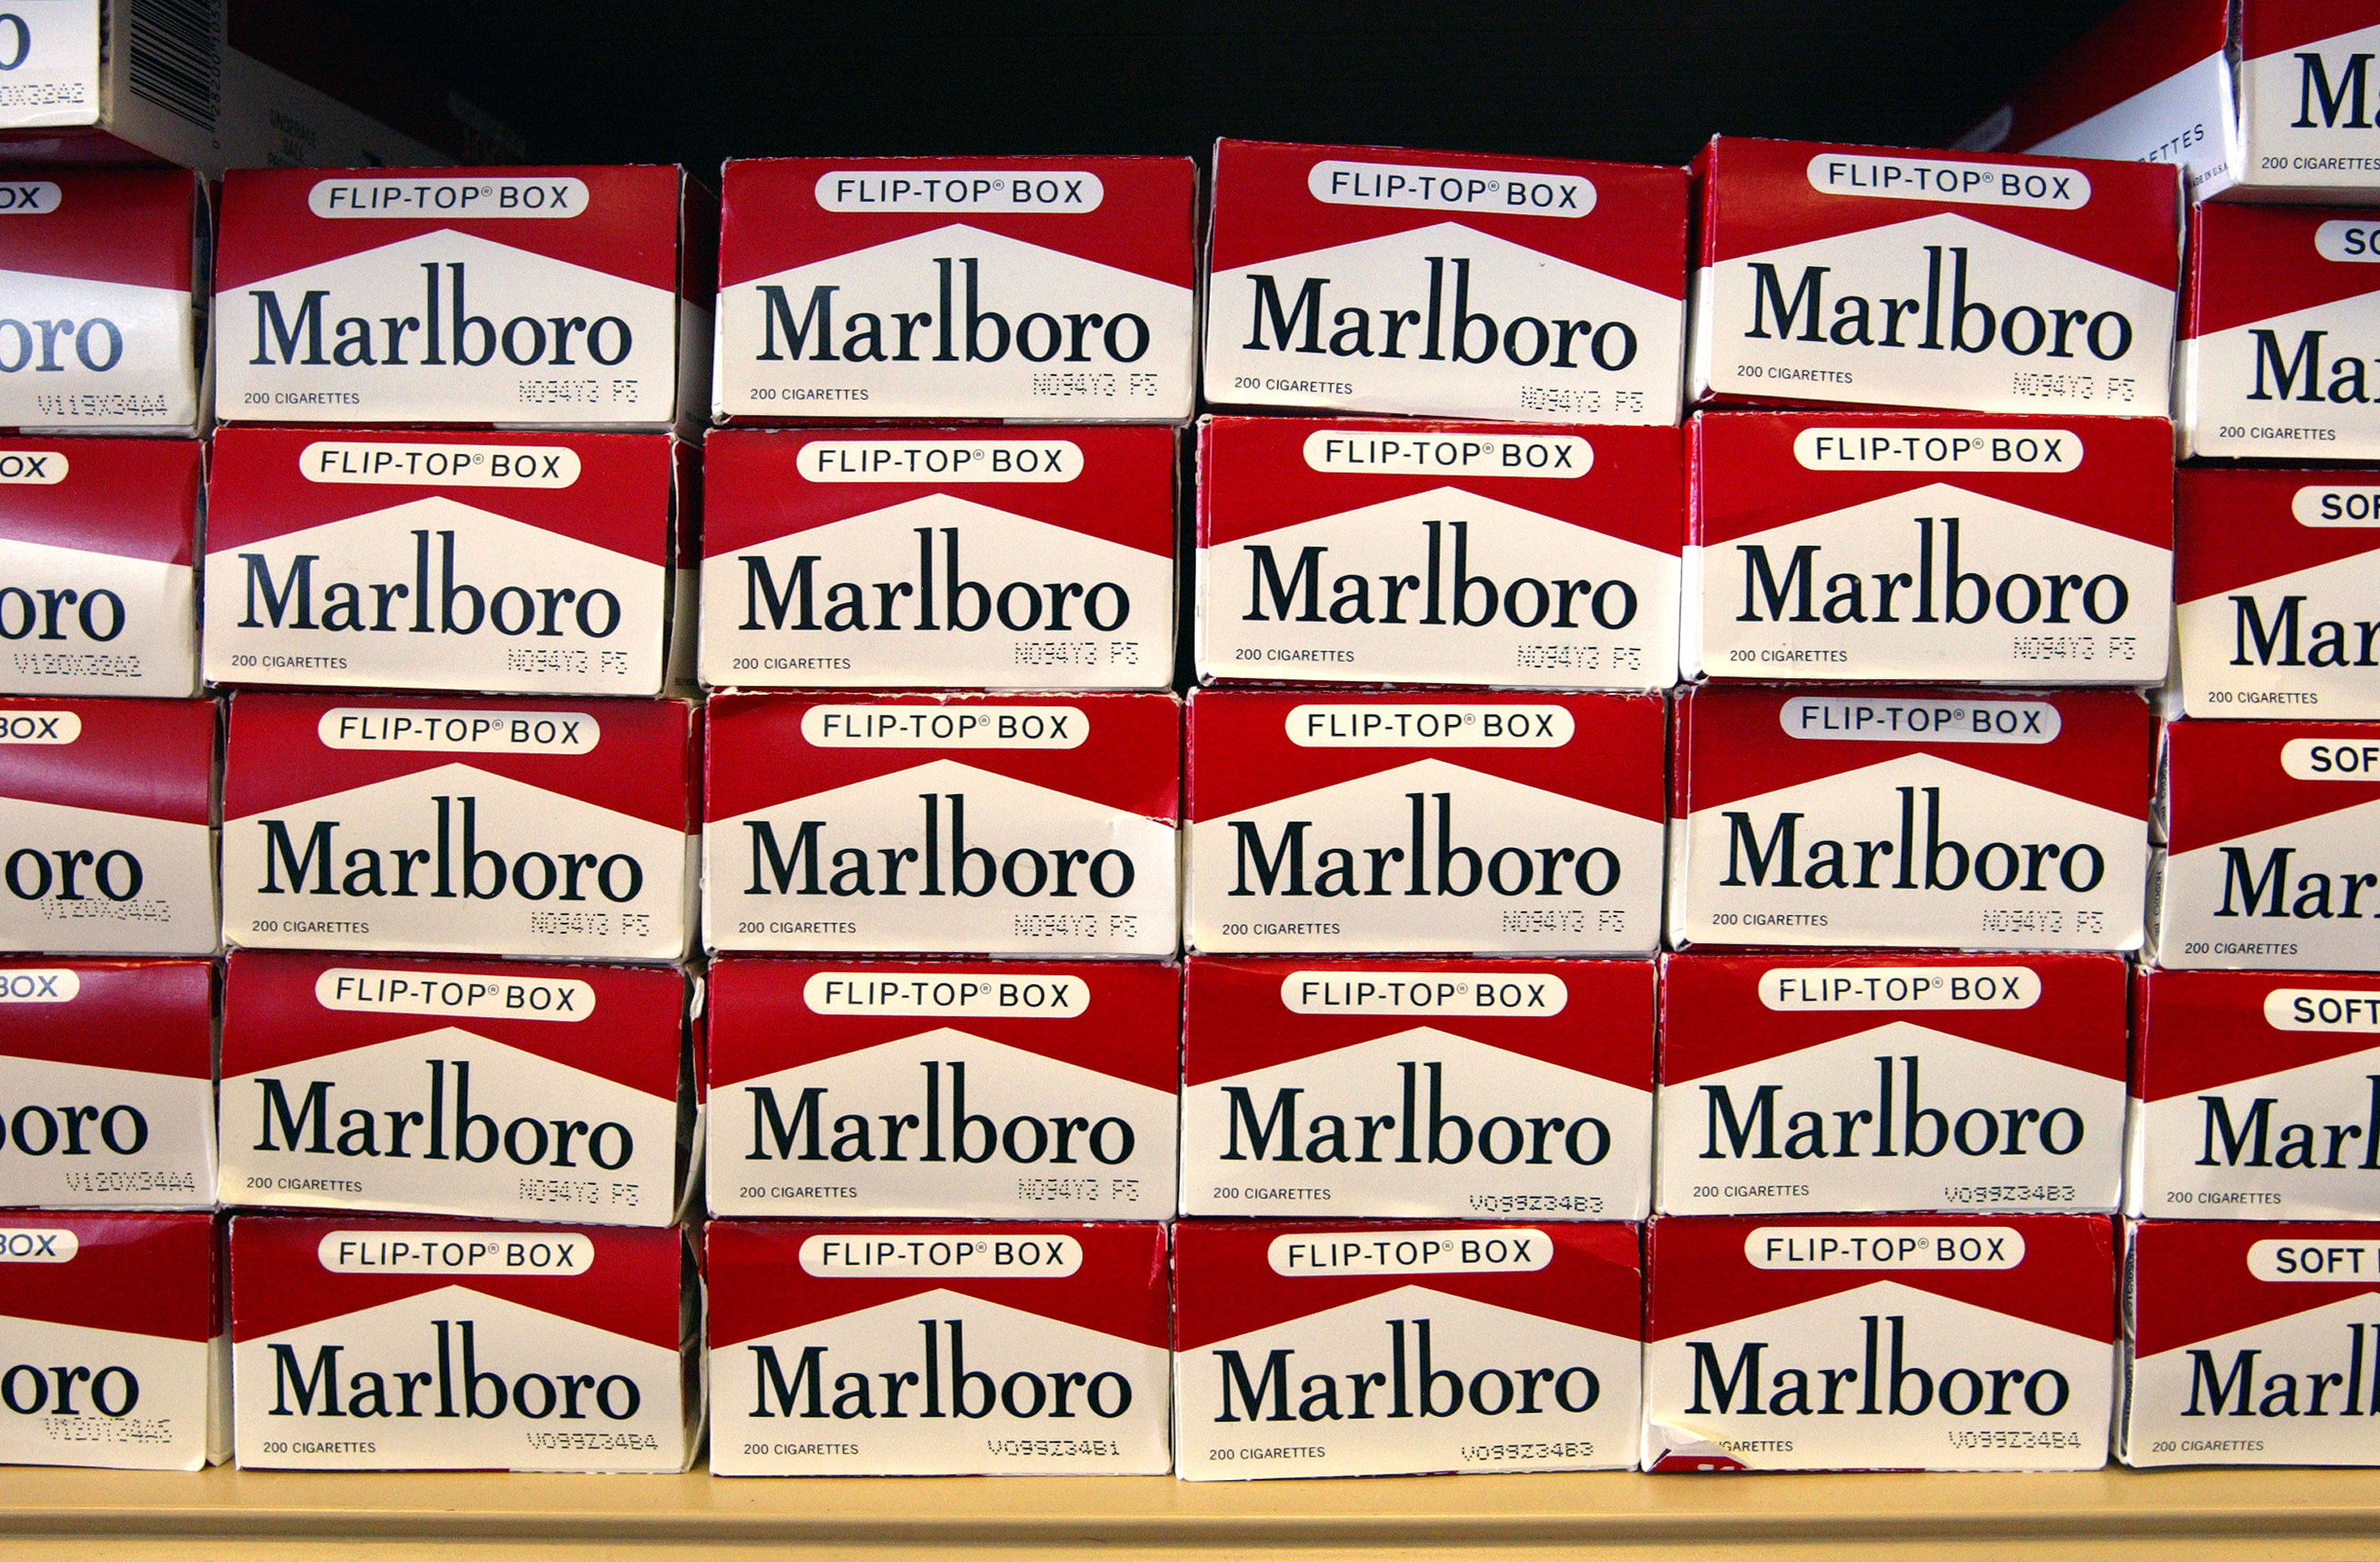 Cartons of Marlboro brand cigarettes are seen inside a Cigarettes Cheaper store on June 13, 2003, in Niles, Illinois. (Getty Images)